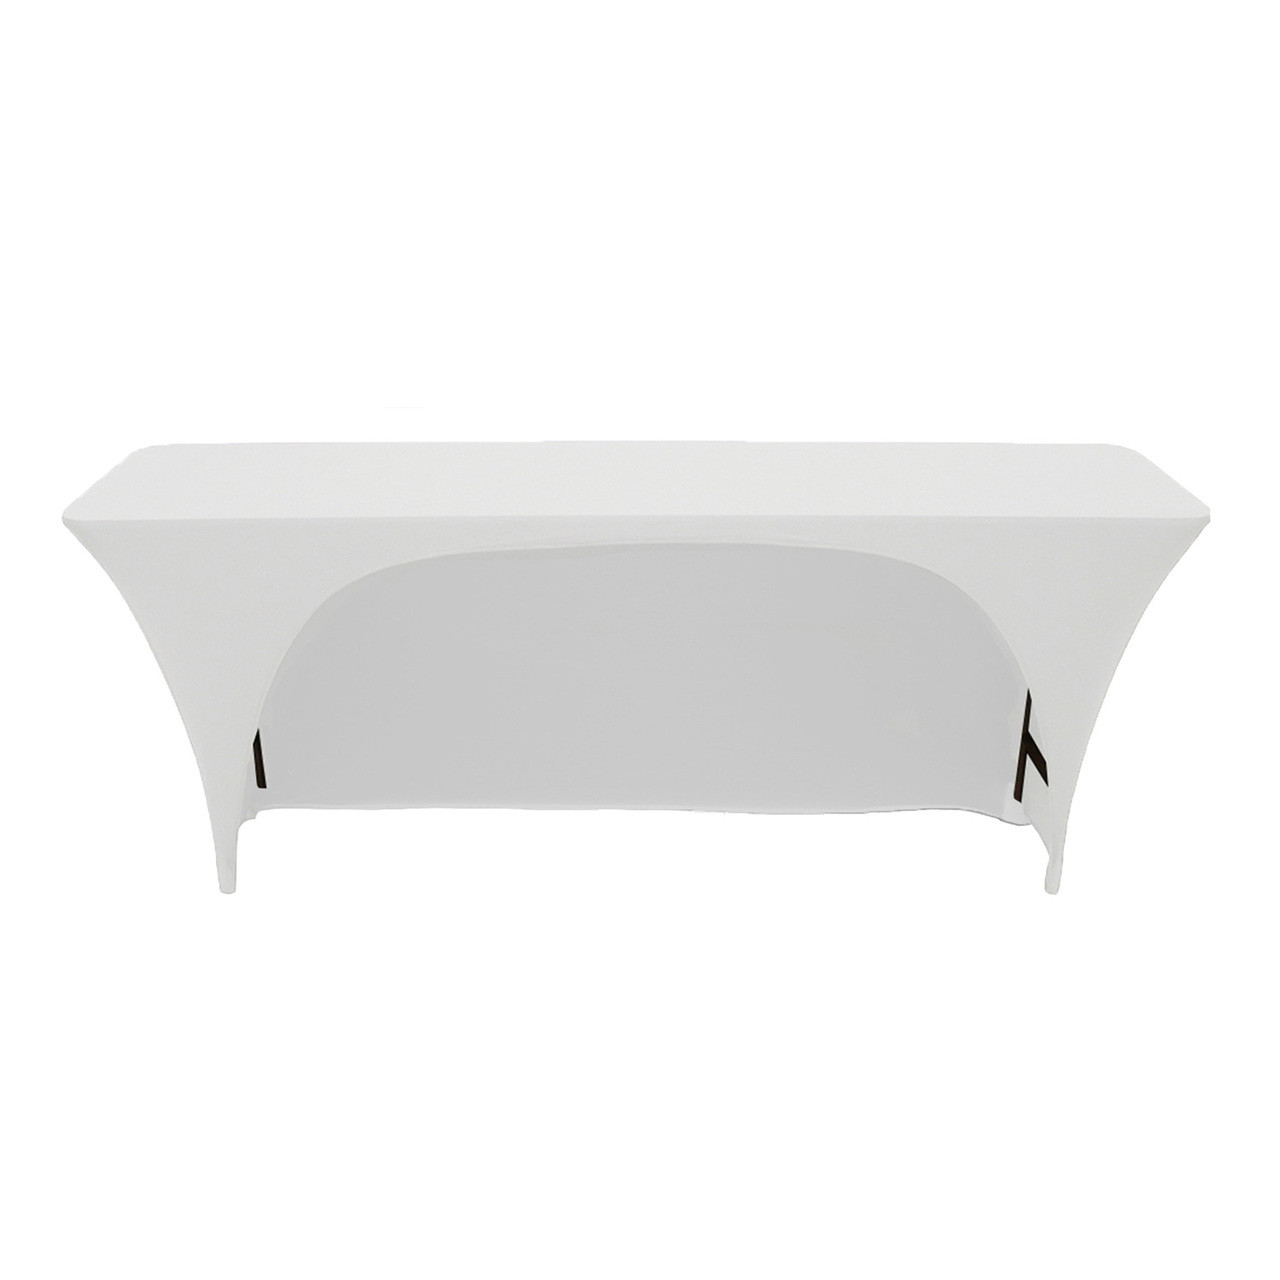 a1bed89a107d Stretch Spandex 6 ft x 18 Inches Open Back Rectangular Table Cover White ...